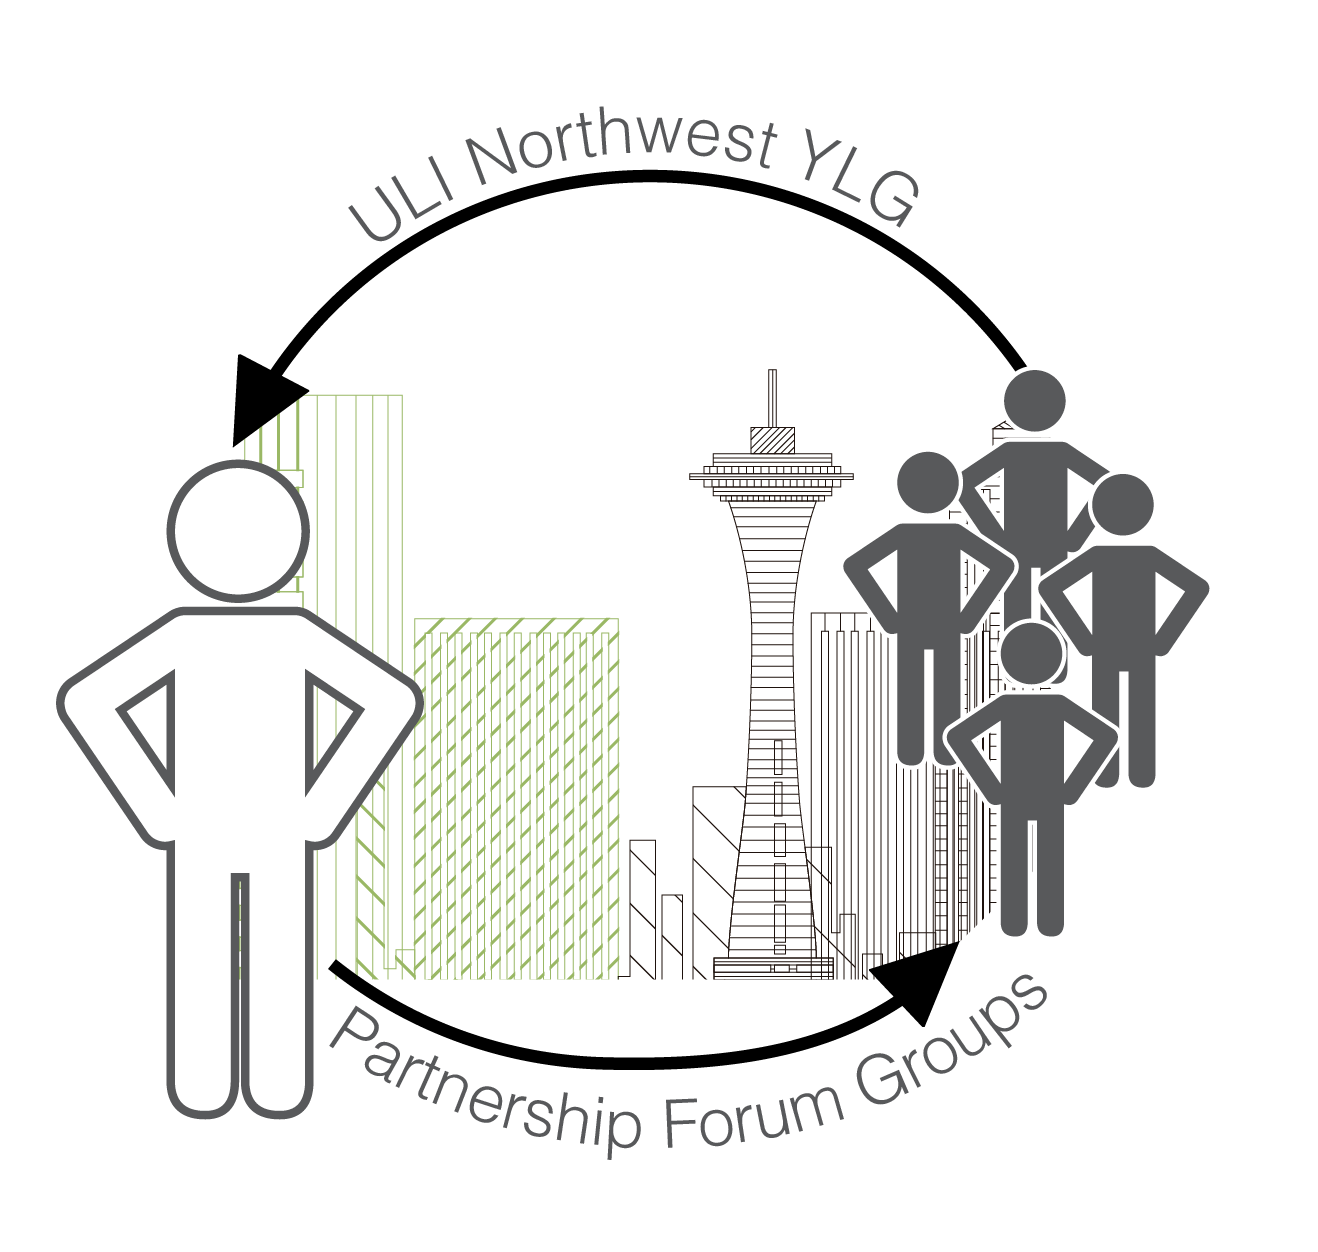 Mosque clipart extended family. Ylg partnership forum groups